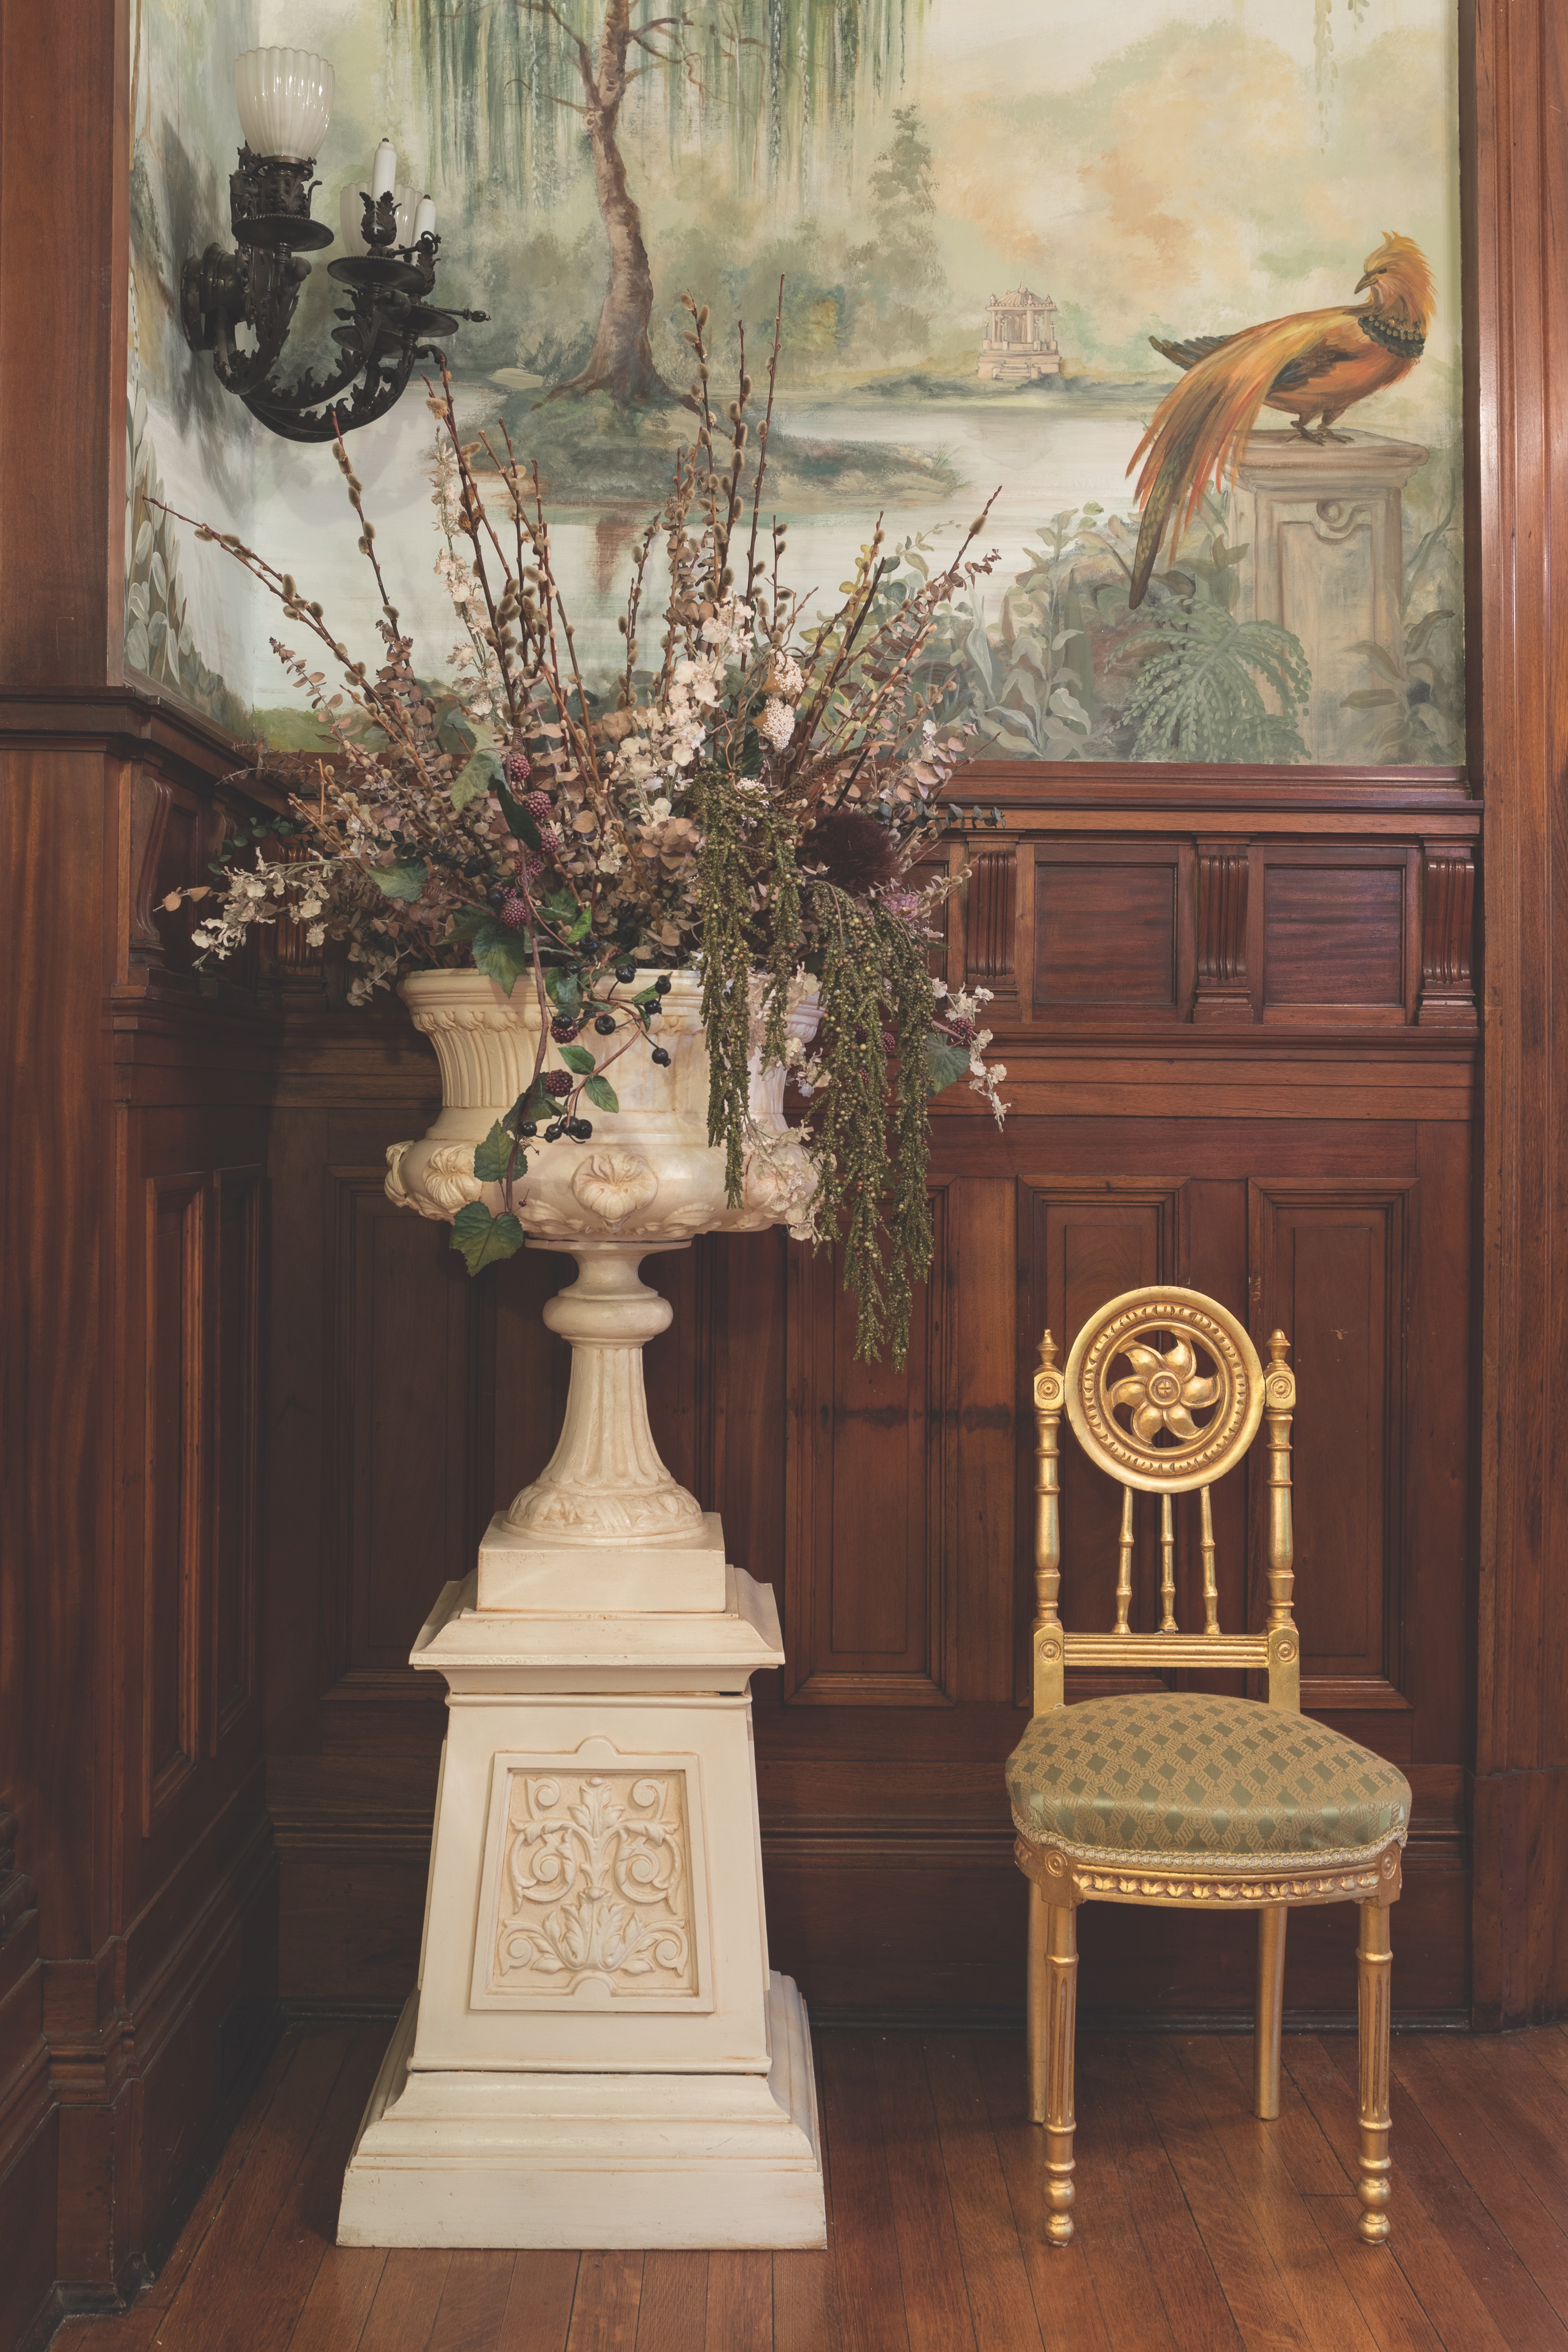 The owner painted these murals  of Forest Park, the nearby site  of the 1904 St. Louis World's Fair,  in the entry and reception  hall, to recall the Fair's  romantic gardens.